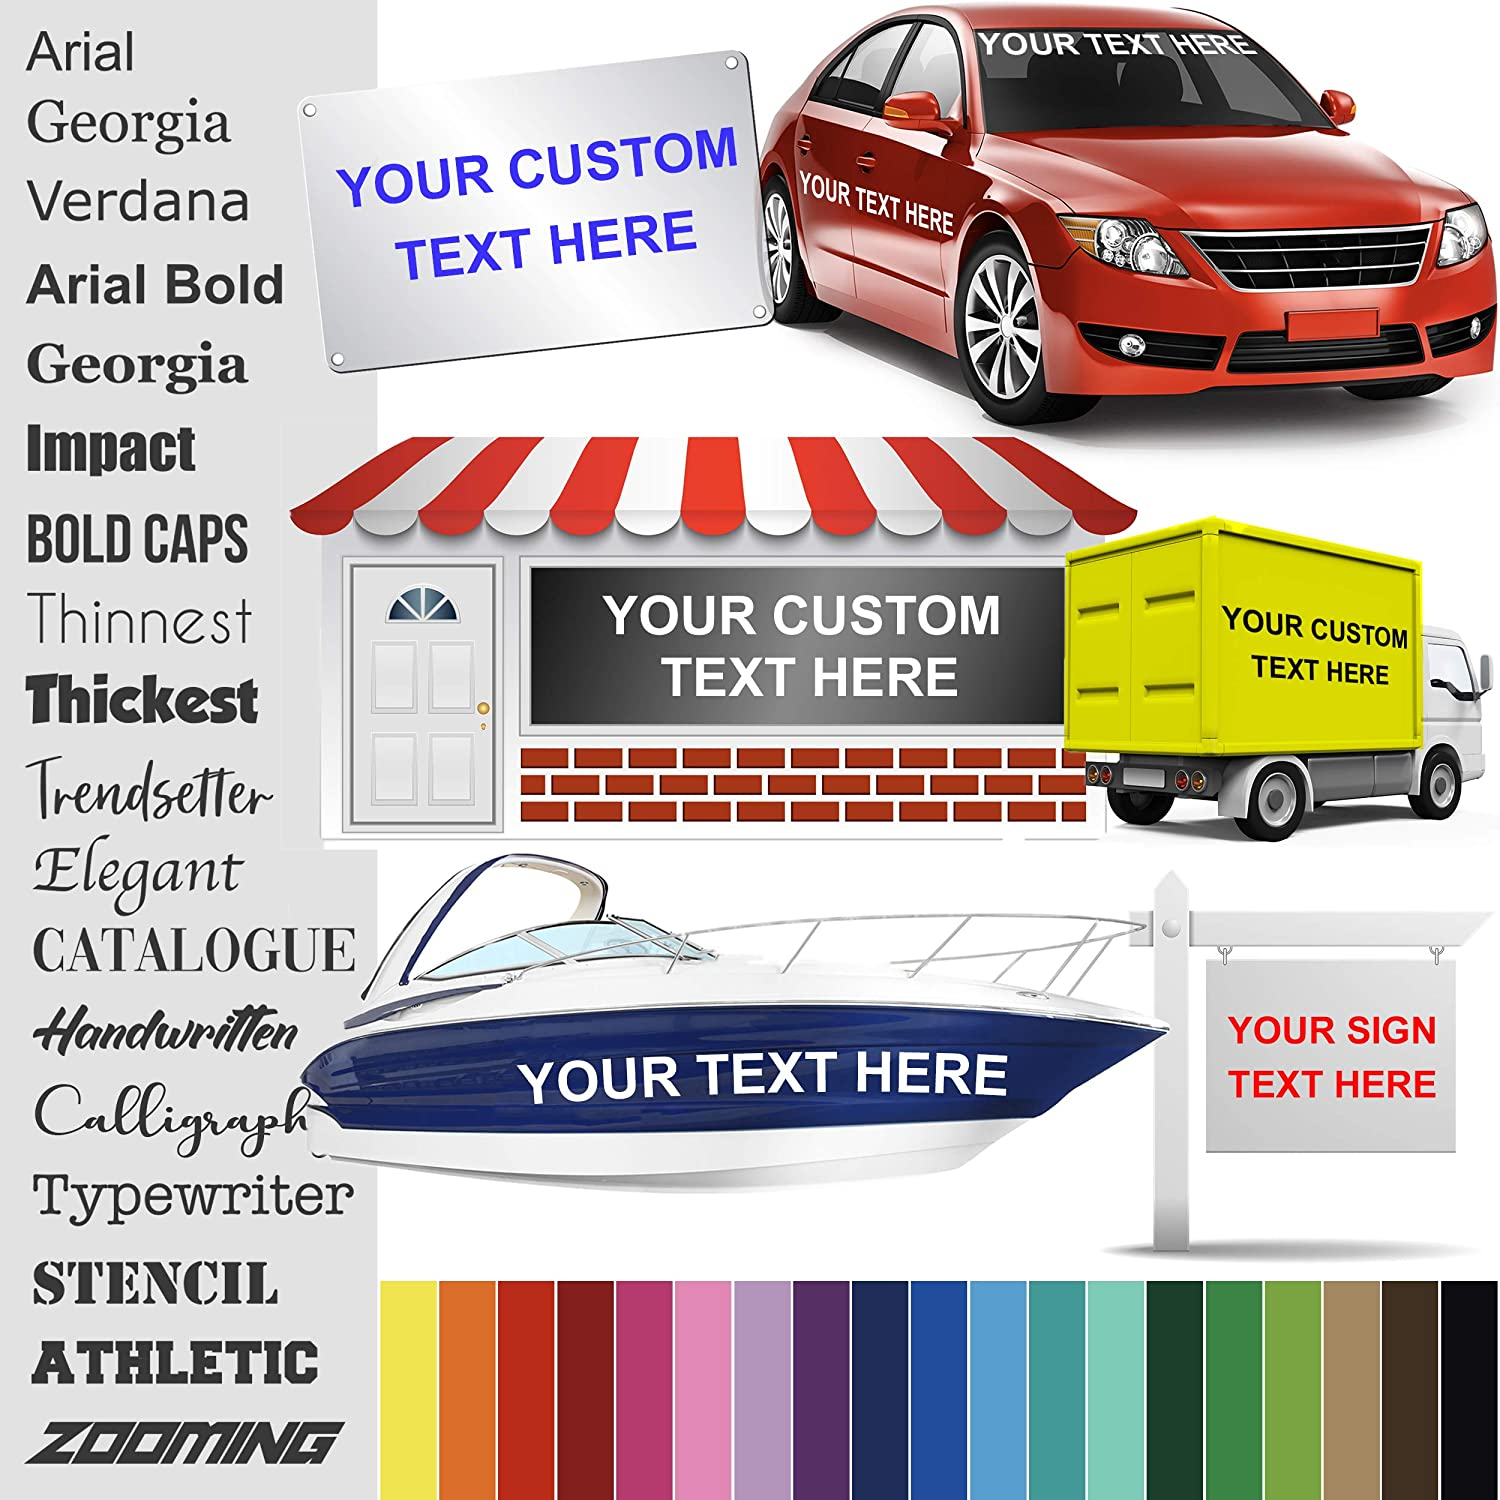 Design Your Own (1 High) Custom Vinyl Sticker | Car Window, Boat, Yeti Lettering JDM Automotive Windshield Graphic Name Letter Auto Vehicle Door Banner Sign Personalized Decal (UP to 18 Long)